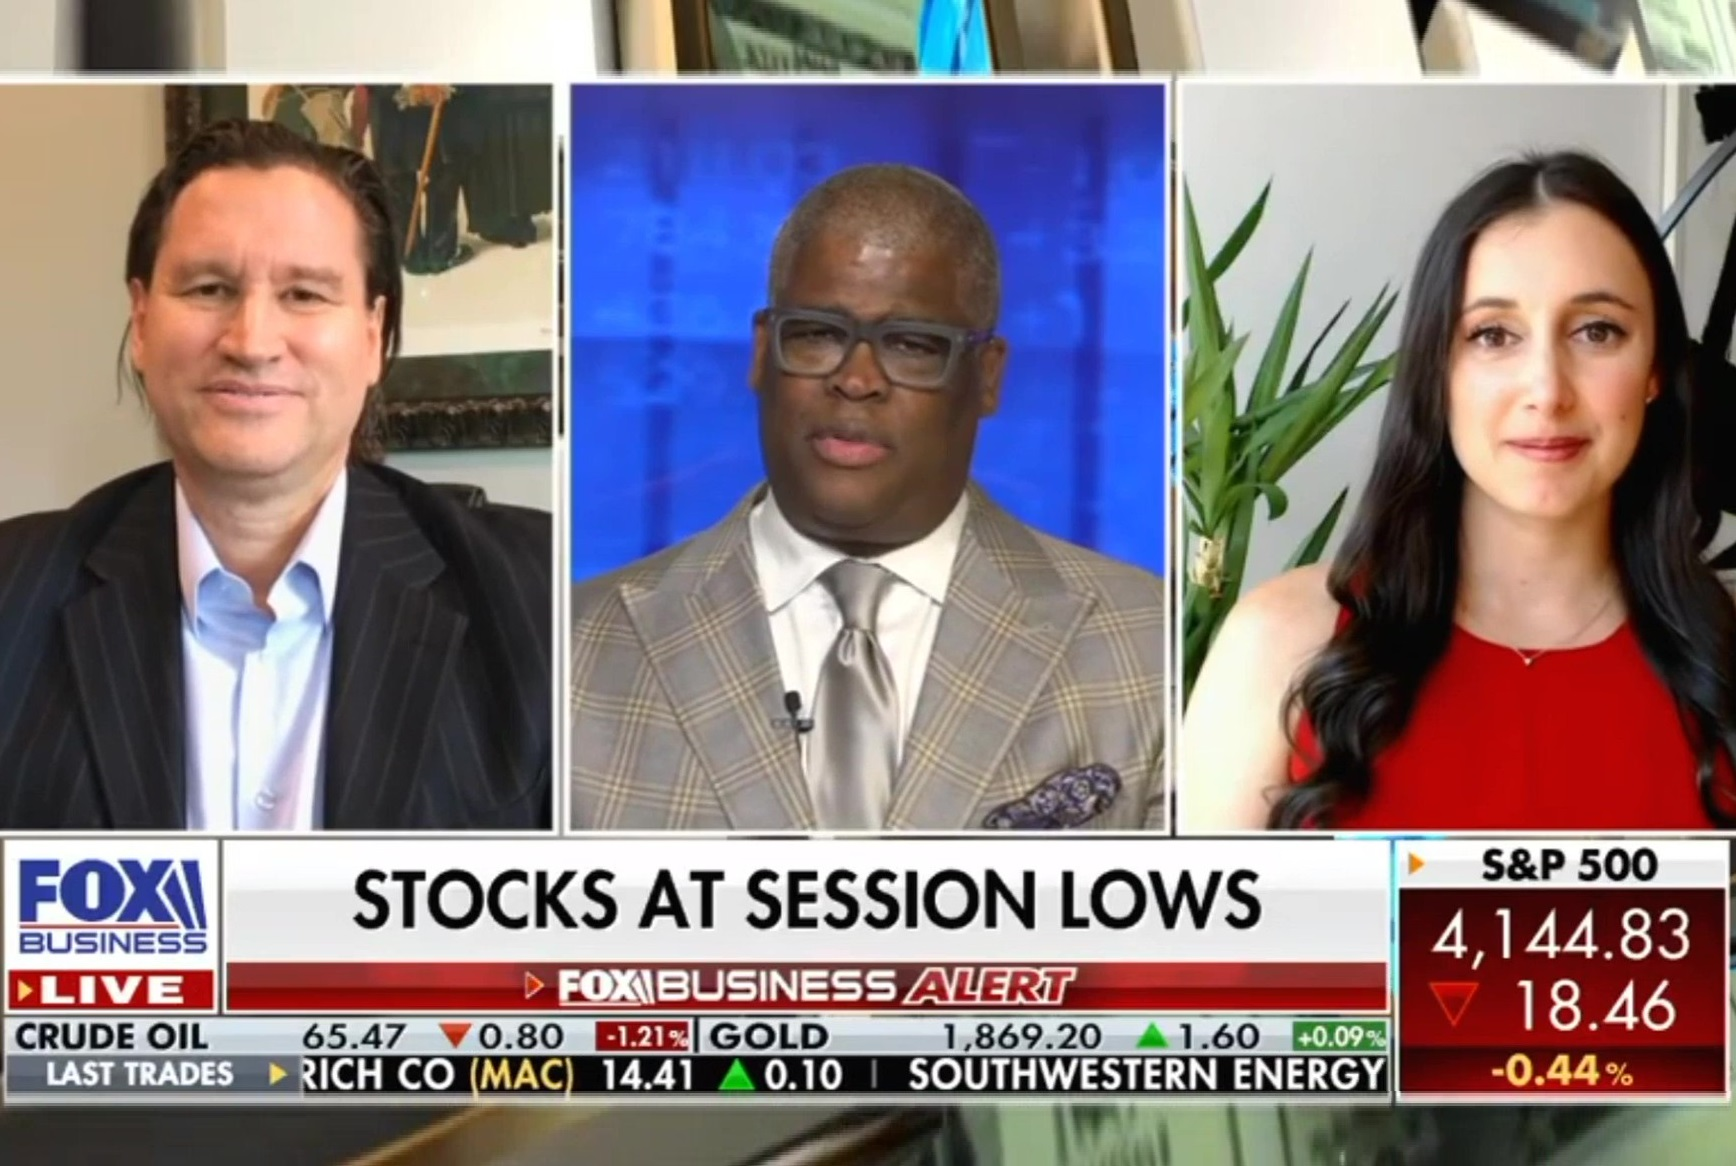 Stocks At Session Lows